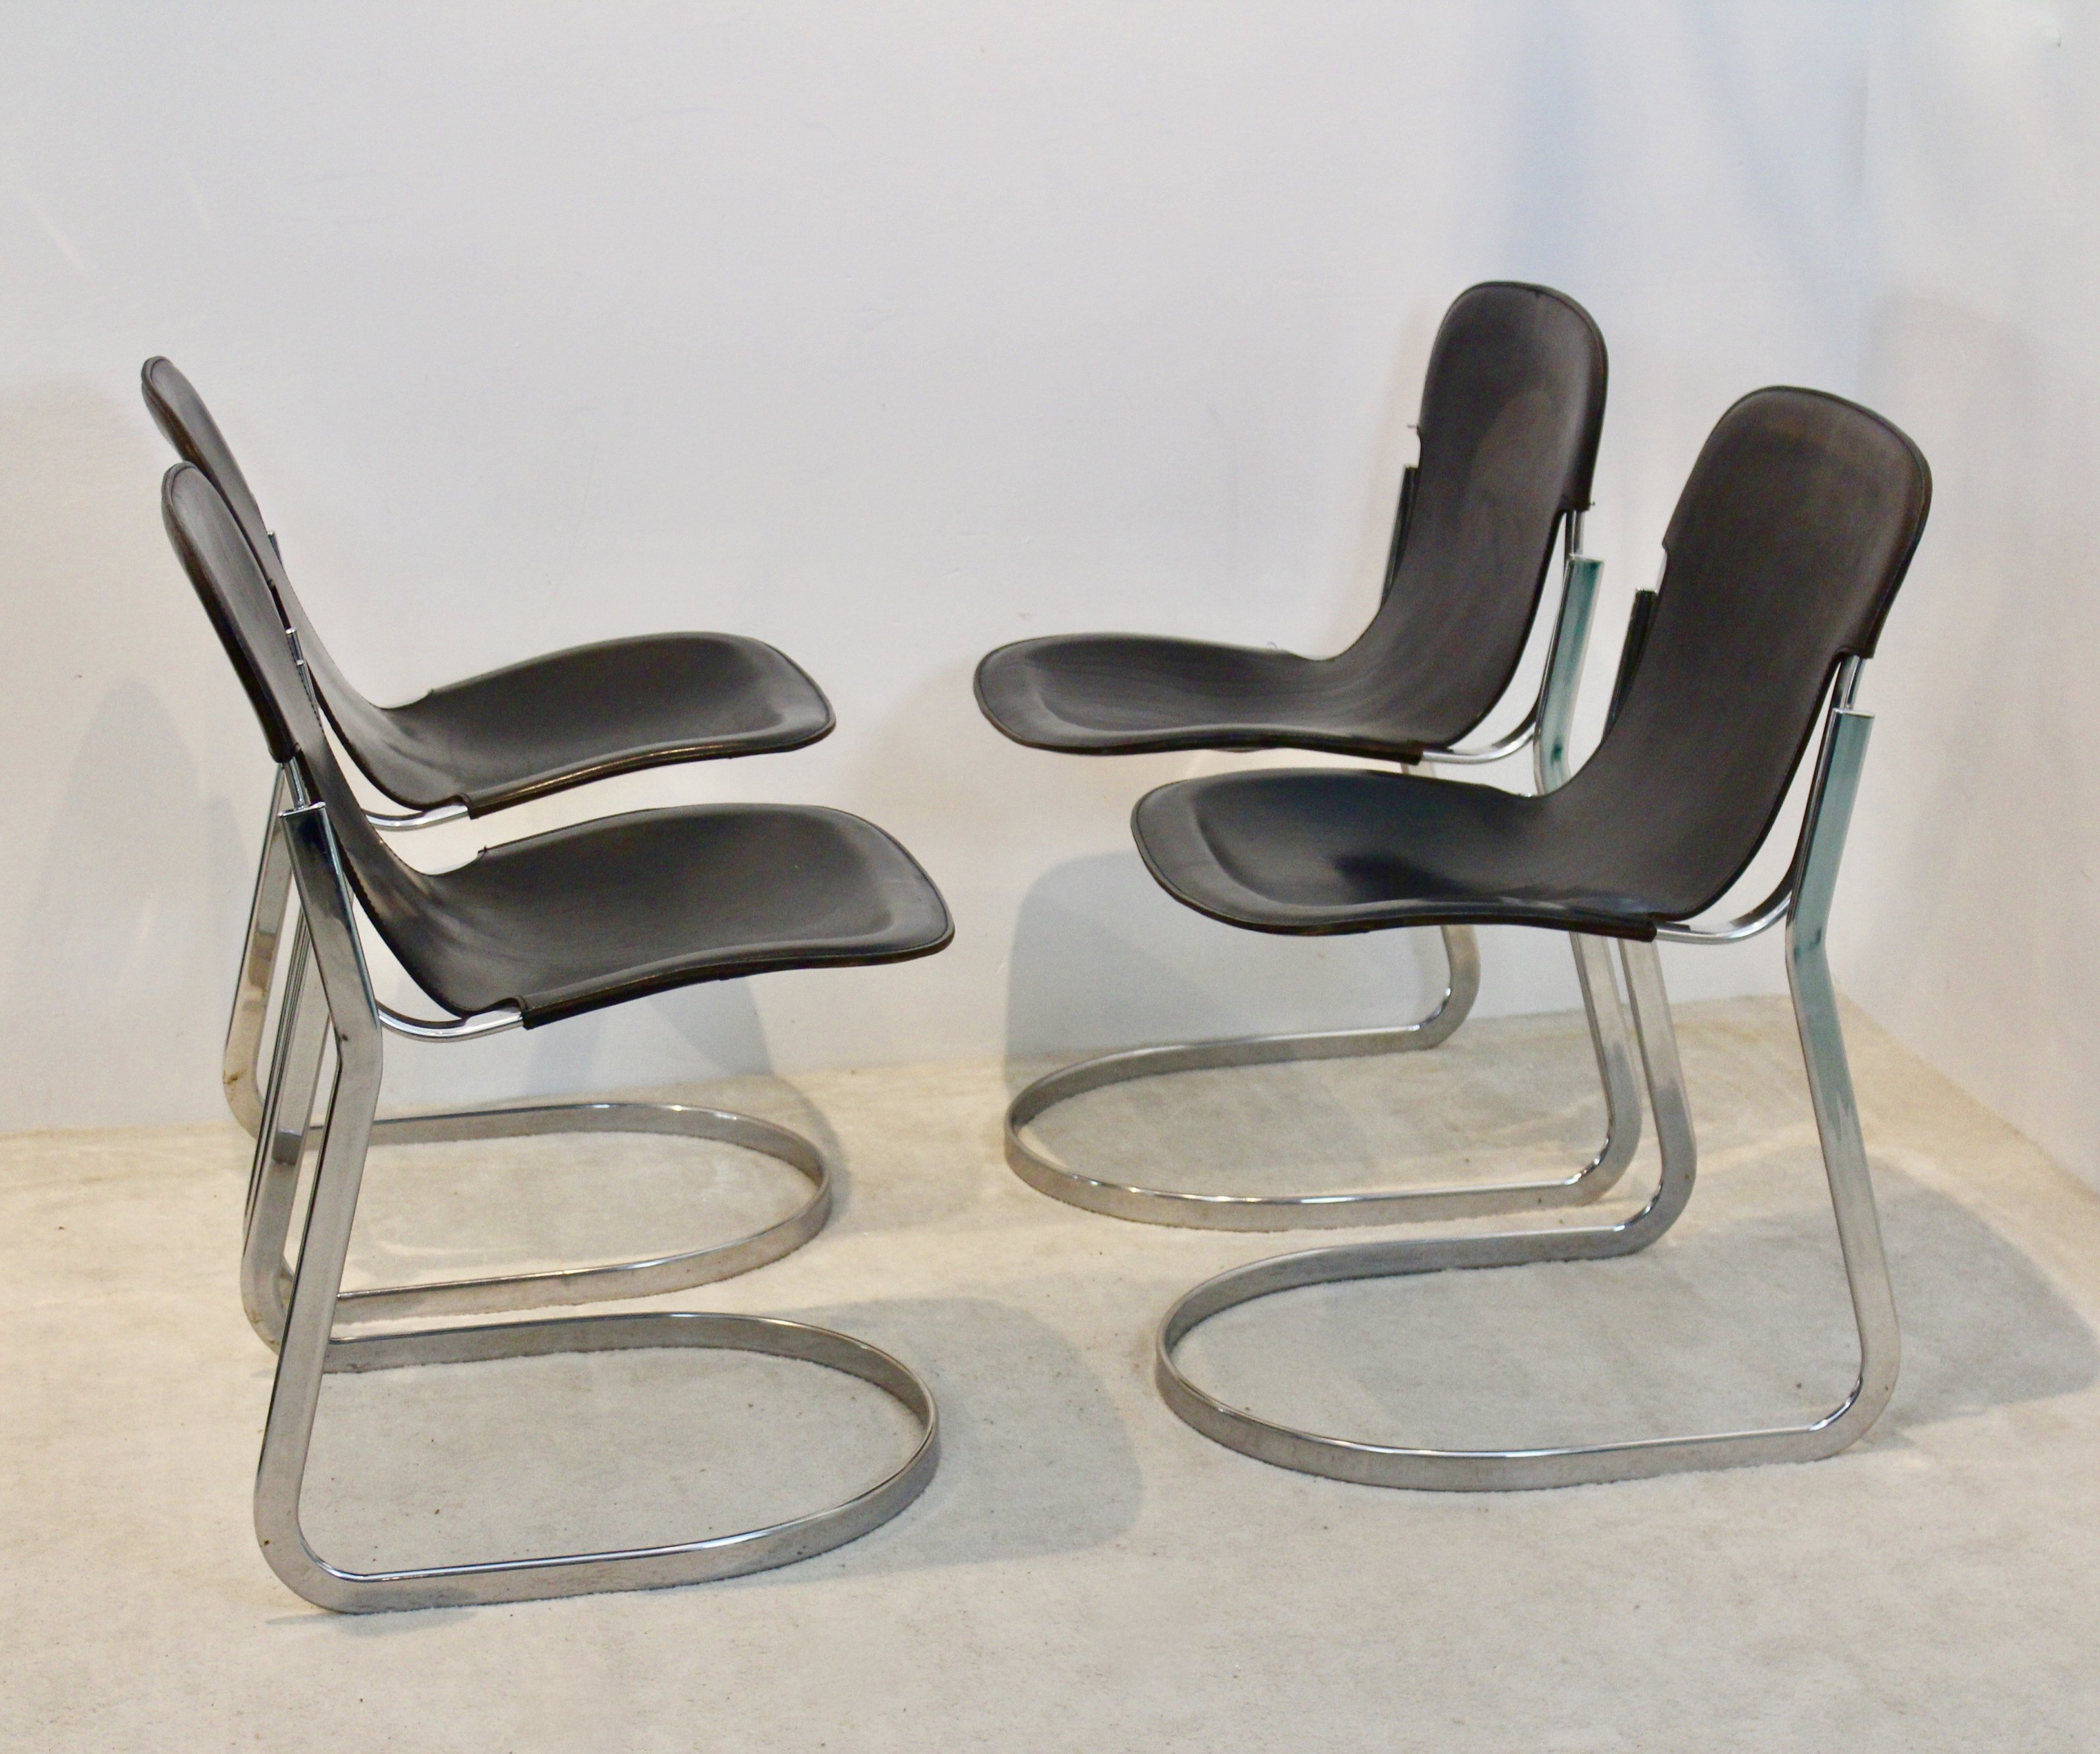 Groovy Set Of Four Black Saddle Leather Dining Chairs By Willy Rizzo For Cidue Ibusinesslaw Wood Chair Design Ideas Ibusinesslaworg